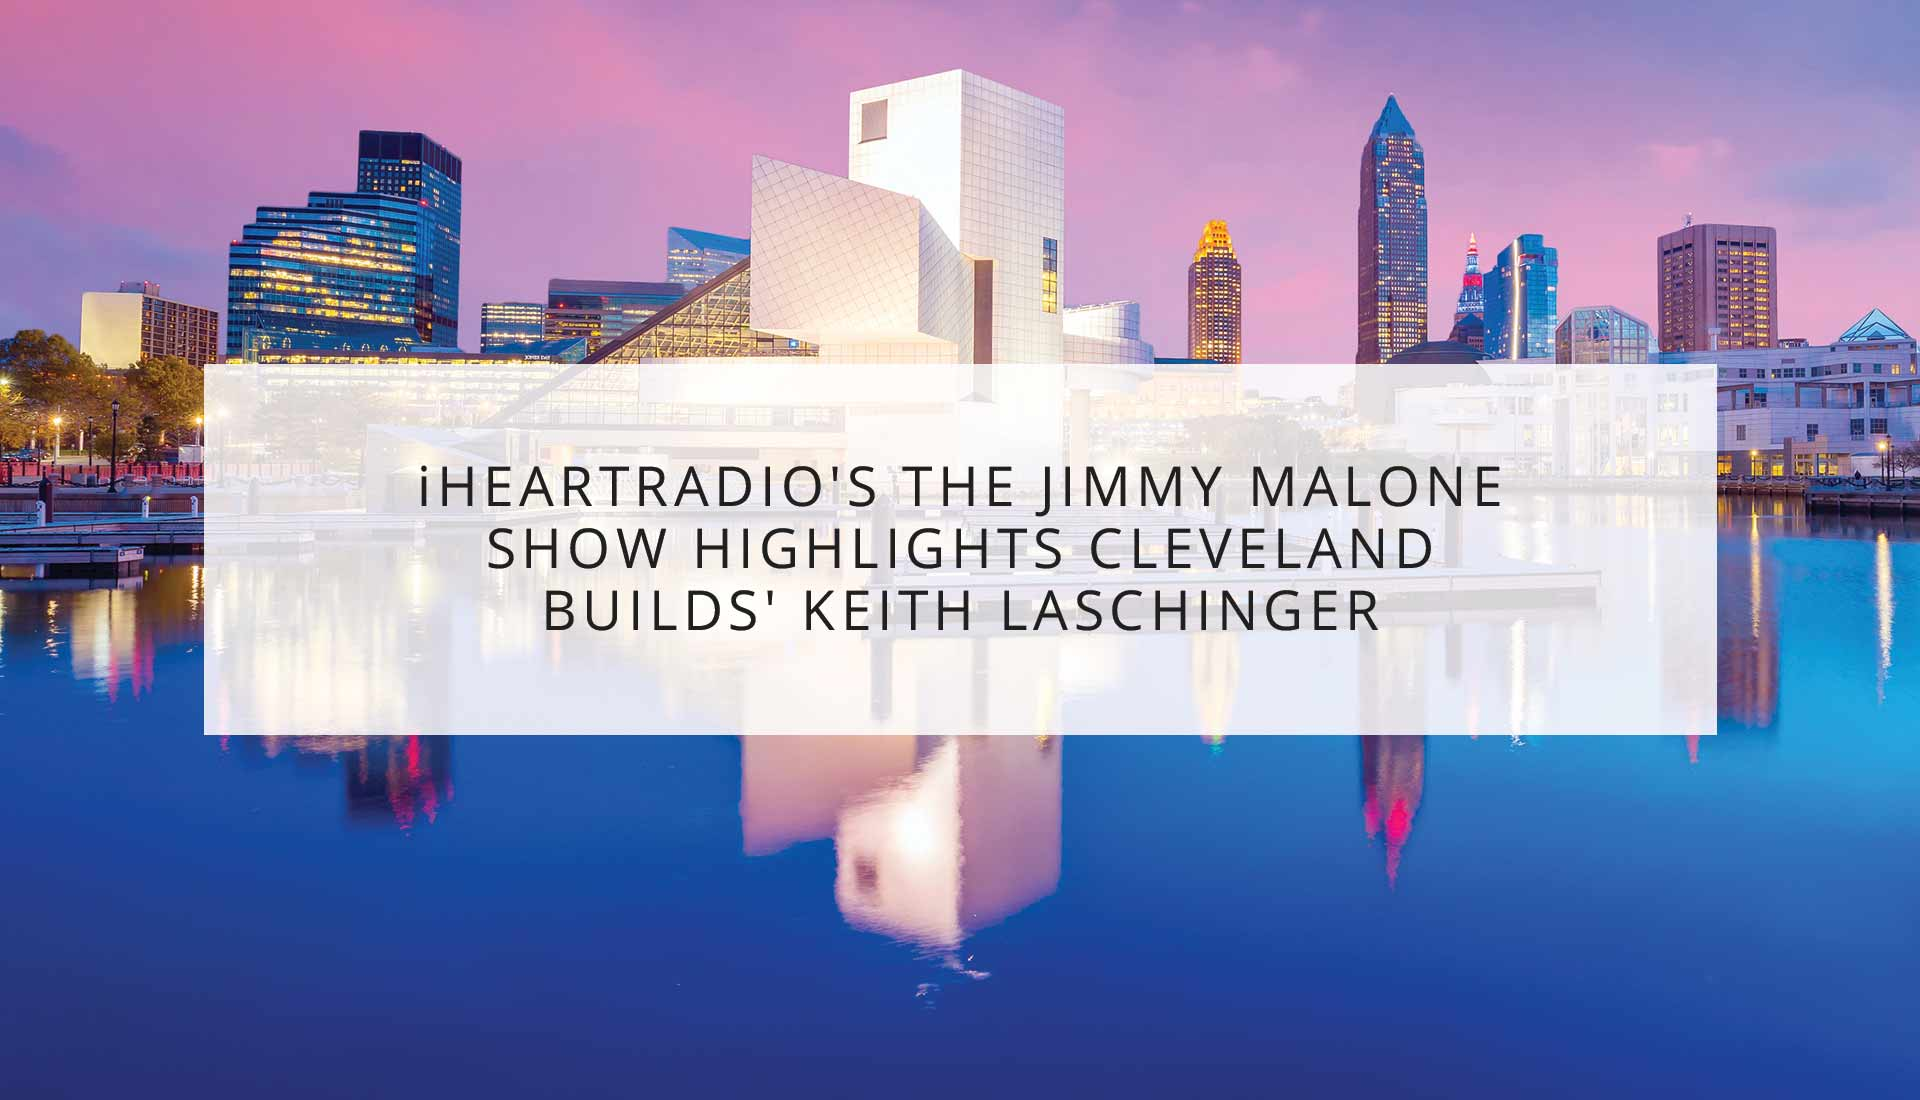 iHeartRadio's The Jimmy Malone Show Highlights Cleveland Builds' Keith Laschinger